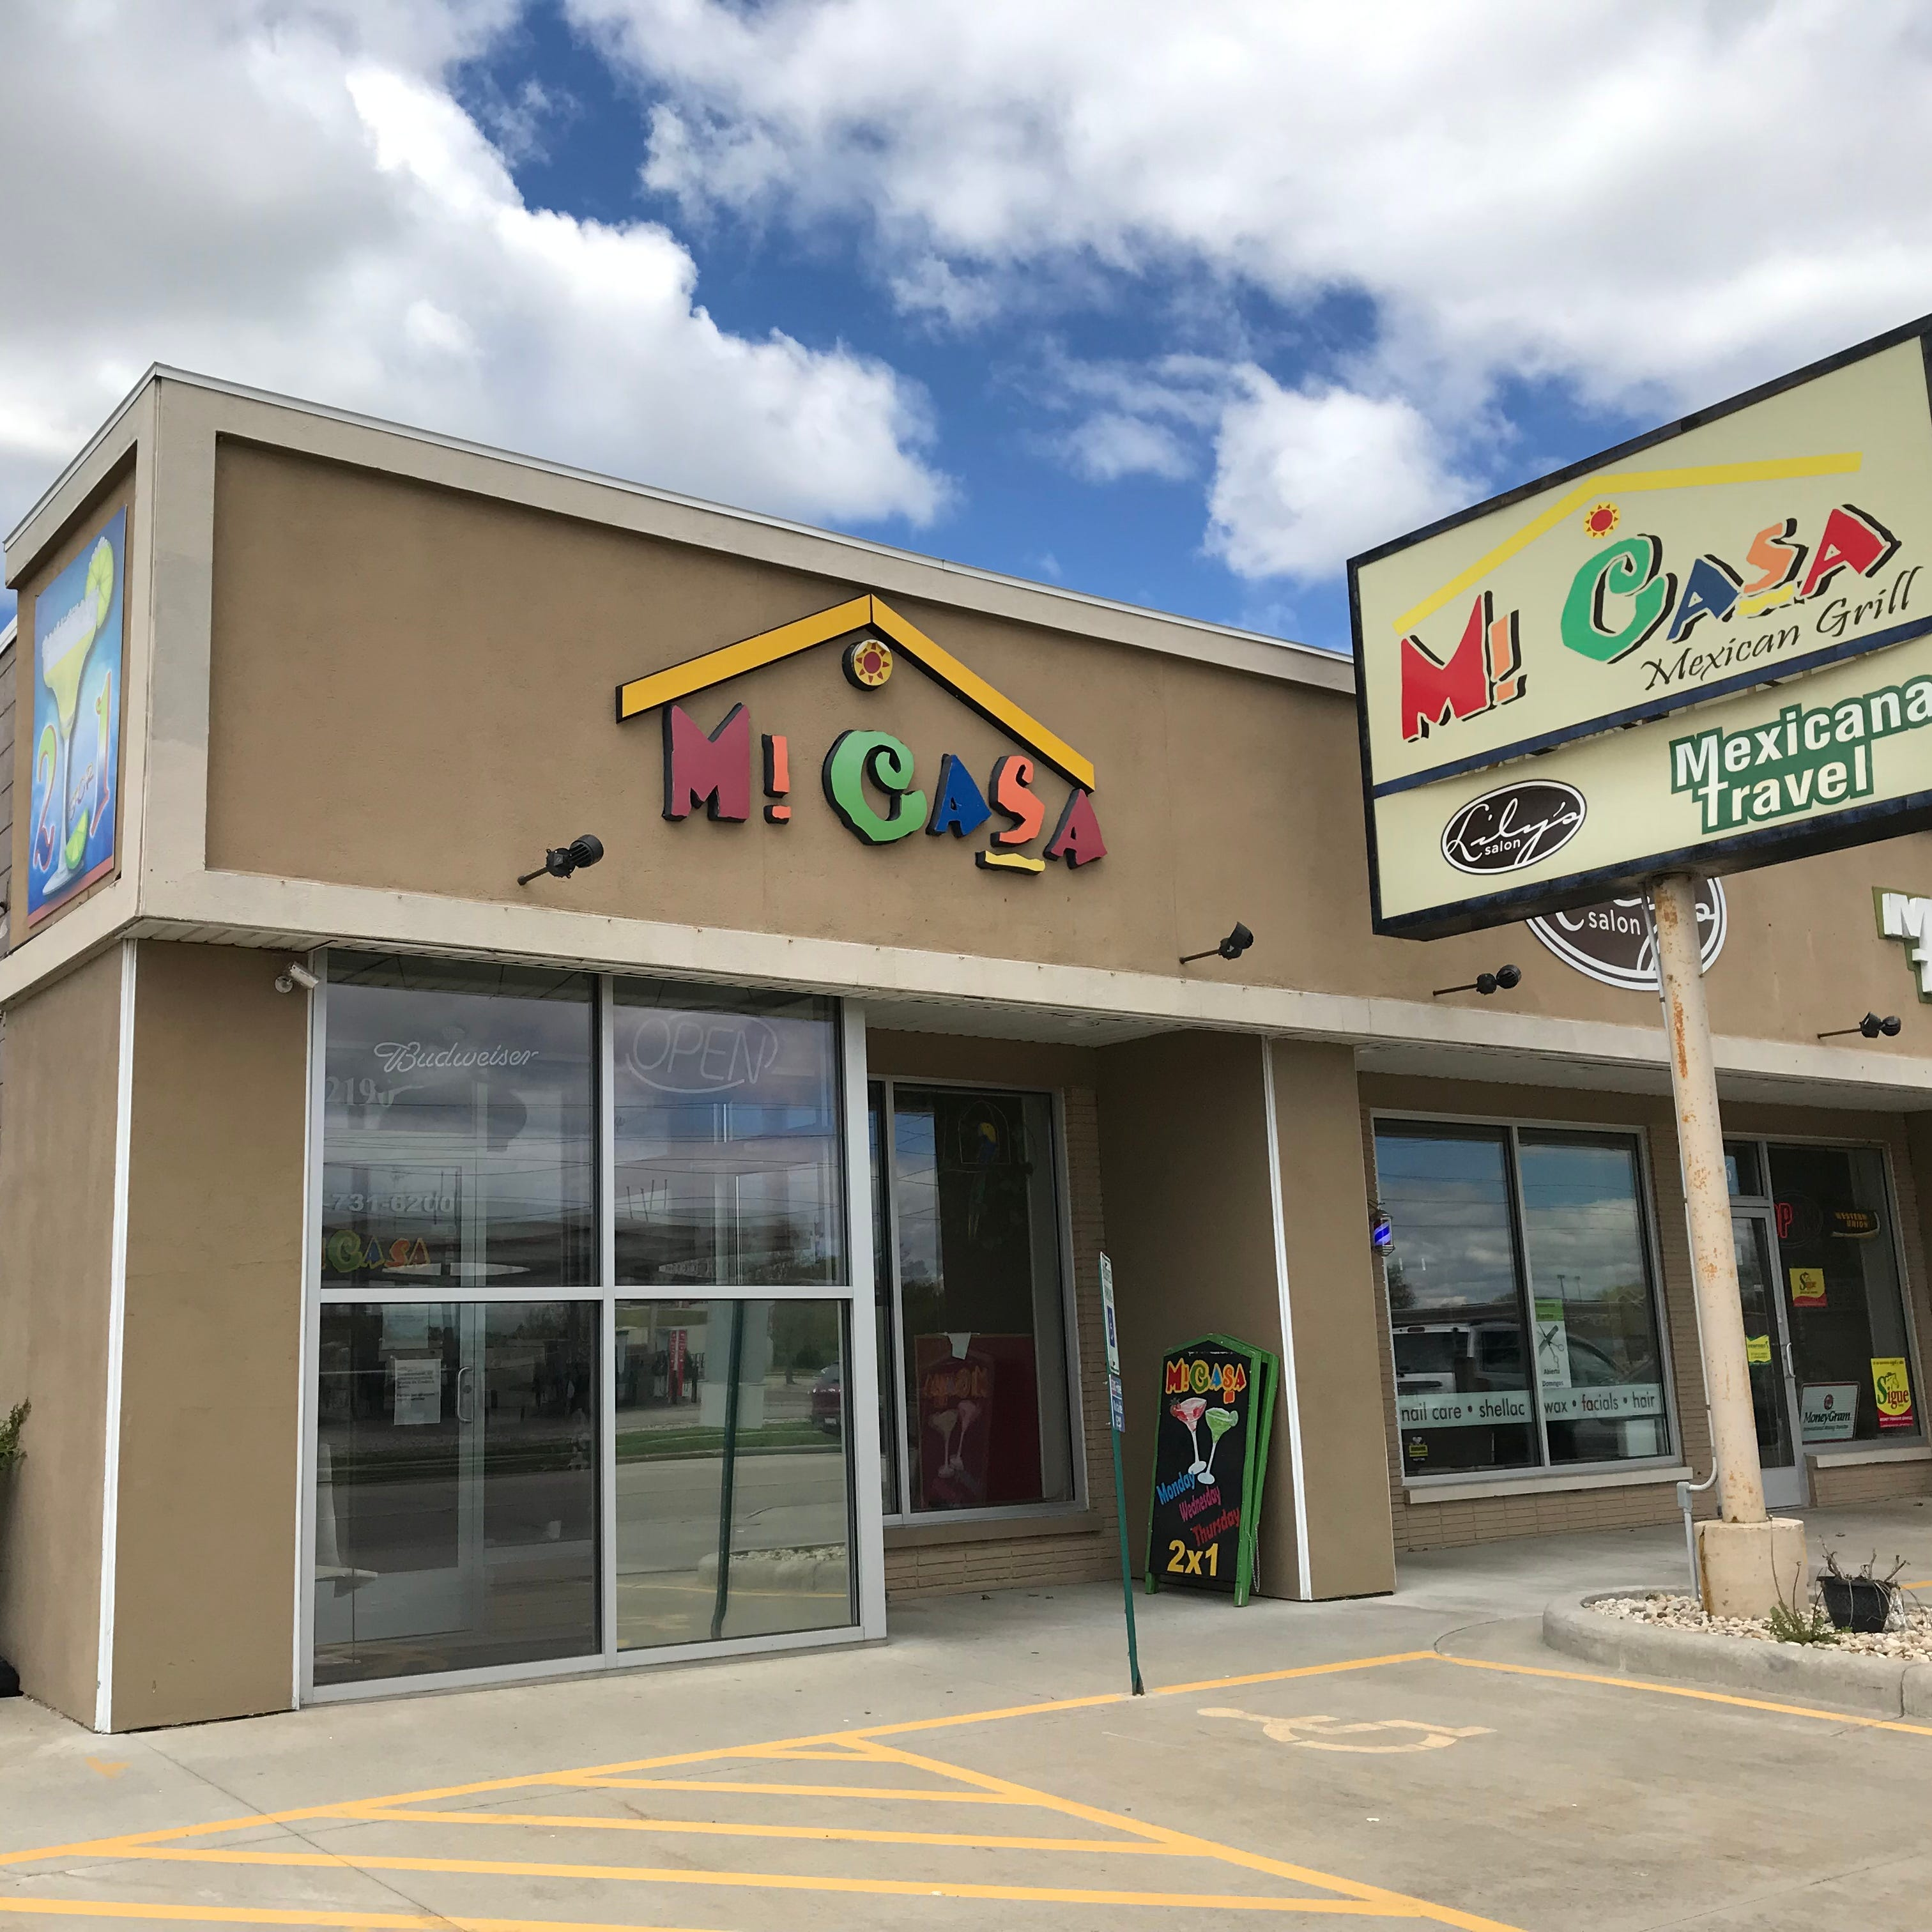 The Buzz: Mi Casa to become El Sabor